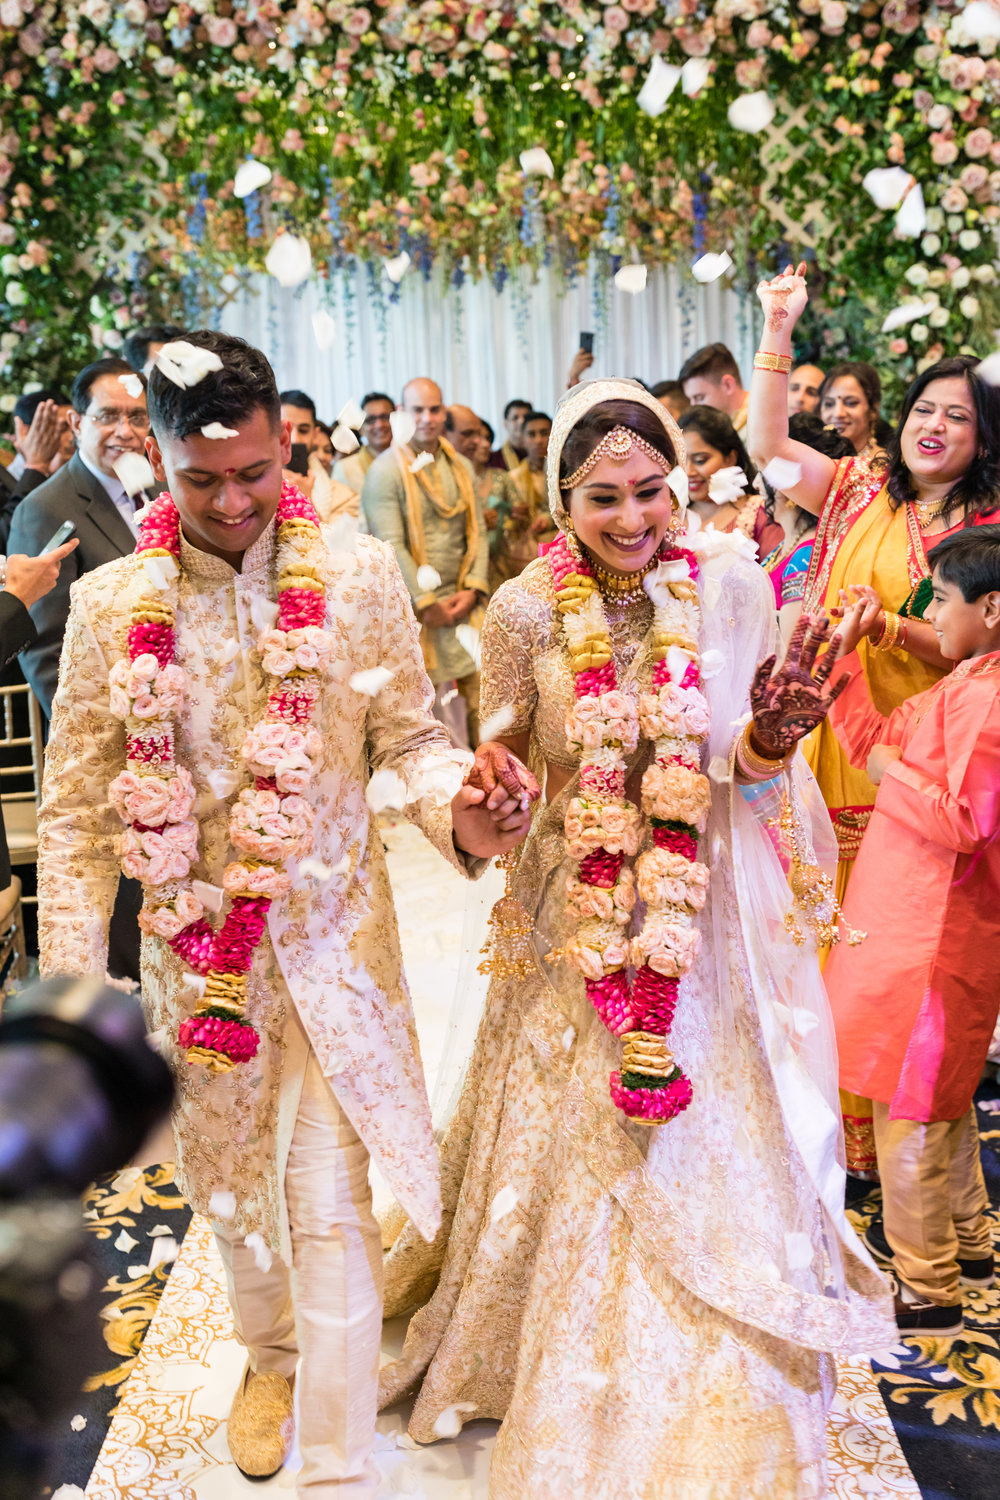 INDIAN WEDDING BRIDE AND GROOM MARRIED.jpg